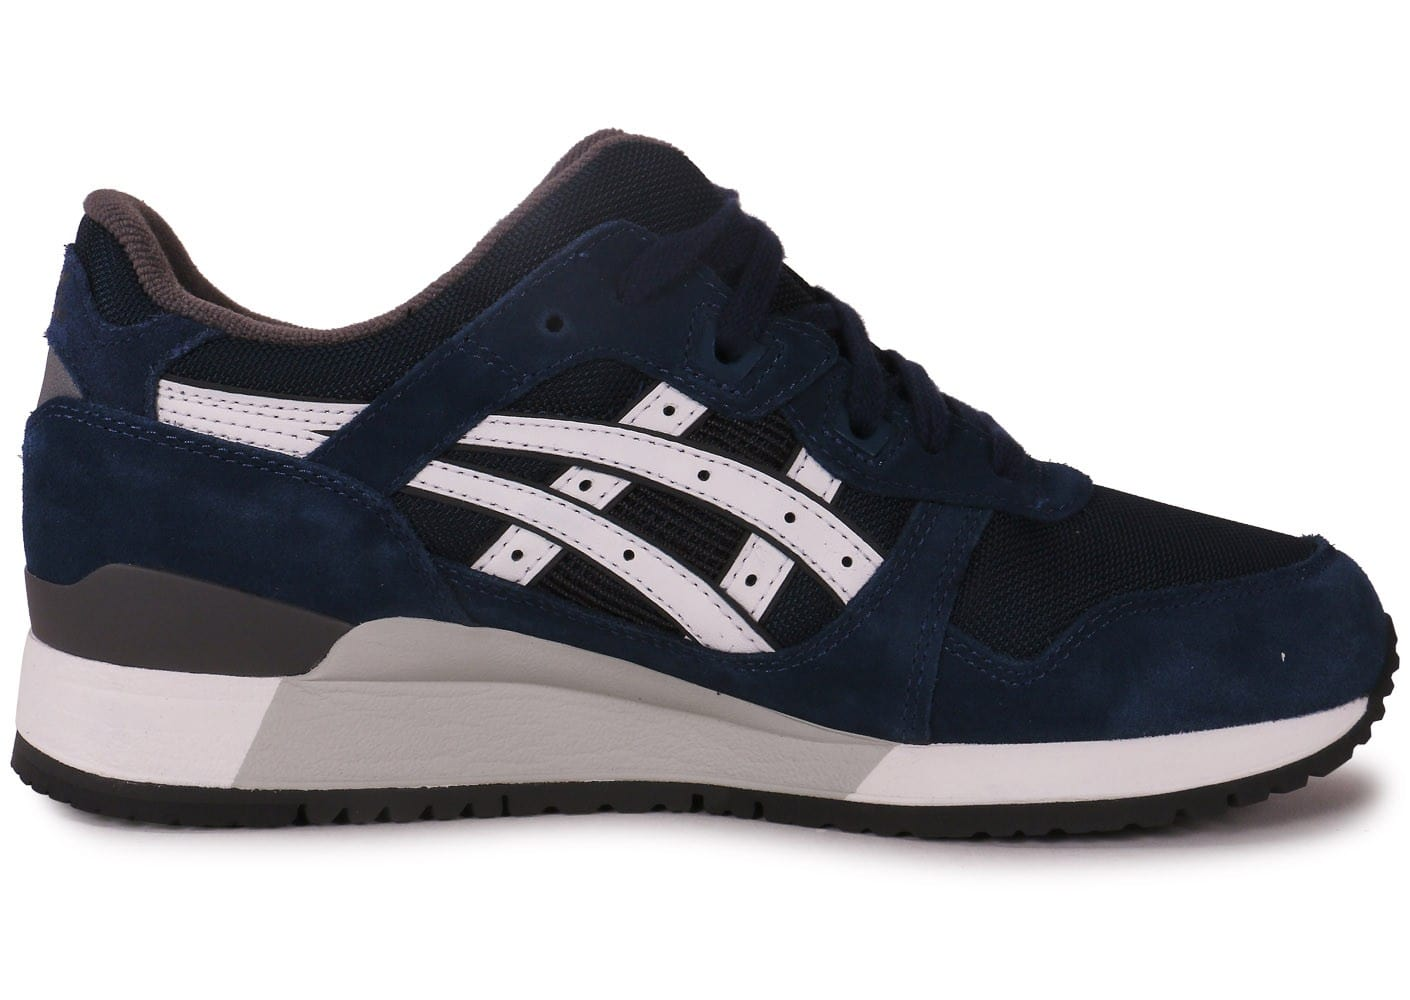 asics gel lyte 3 homme bleu marine marguerite. Black Bedroom Furniture Sets. Home Design Ideas